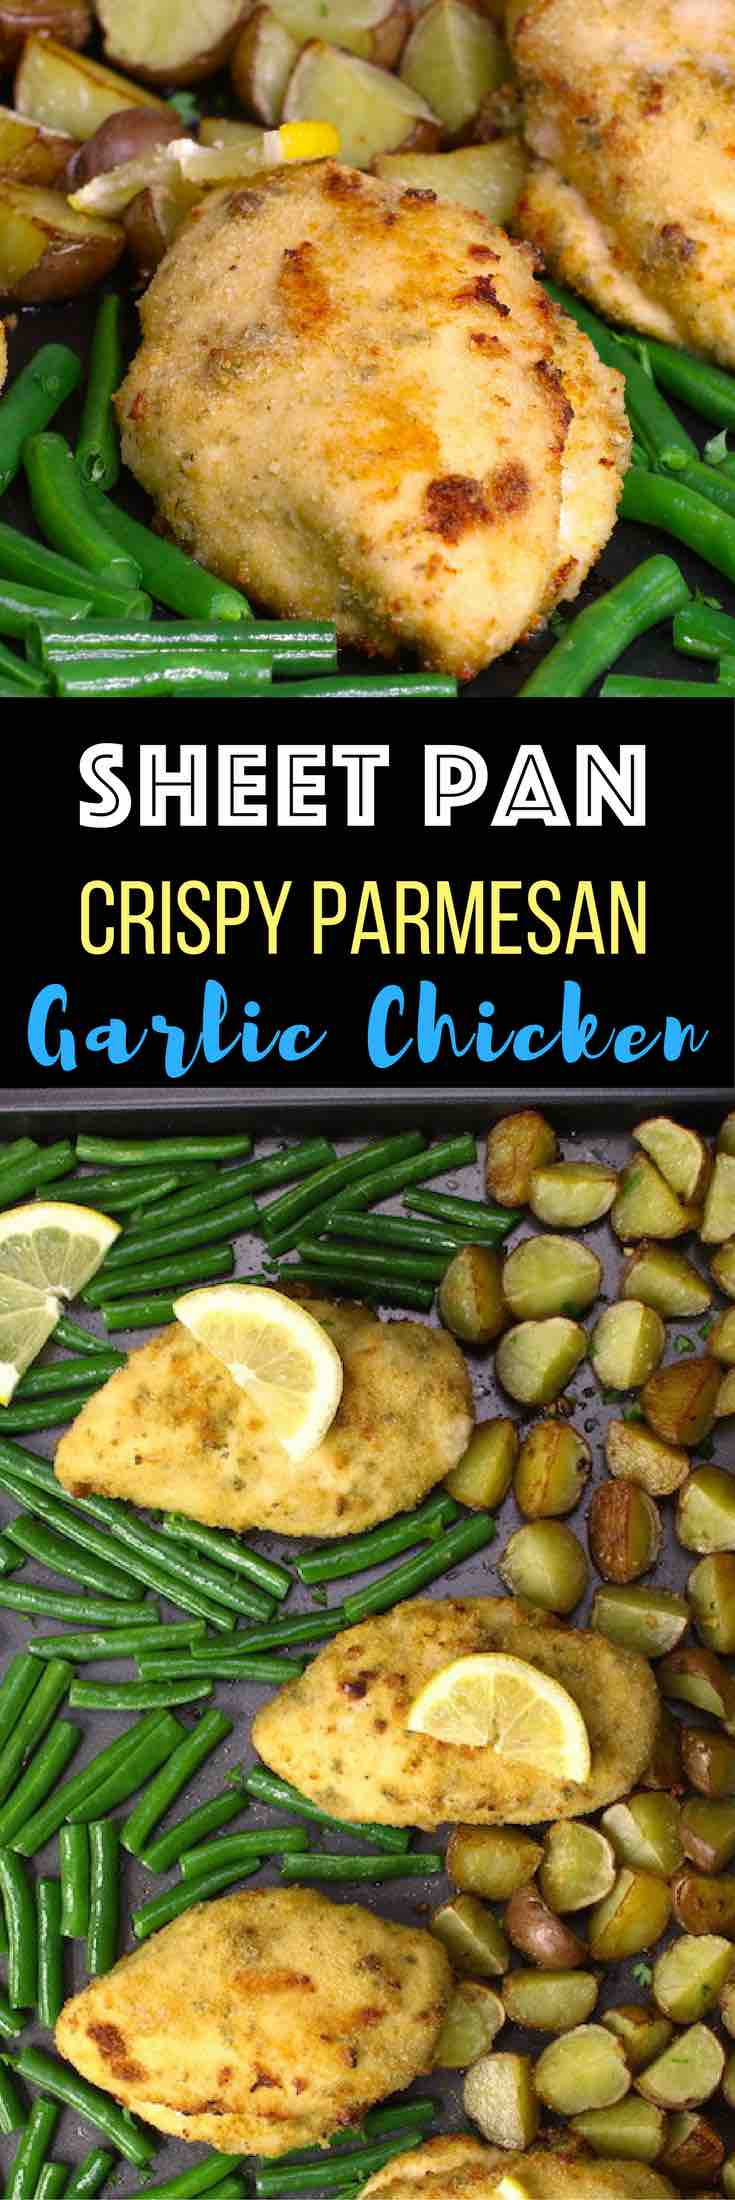 Sheet Pan Crispy Parmesan Garlic Chicken with Veggies and Lemon: Tender, juicy chicken breasts baked to perfection with potatoes, lemon and green beans. All baked on a single pan with less than 30 minutes! So easy. Quick dinner is served with just a few simple ingredients. Chicken breasts are dipped in parsley, garlic and egg mix, then covered with bread crumb and Parmesan cheese. So good! Quick and easy dinner, healthy recipe. Video recipe.   tipbuzz.com